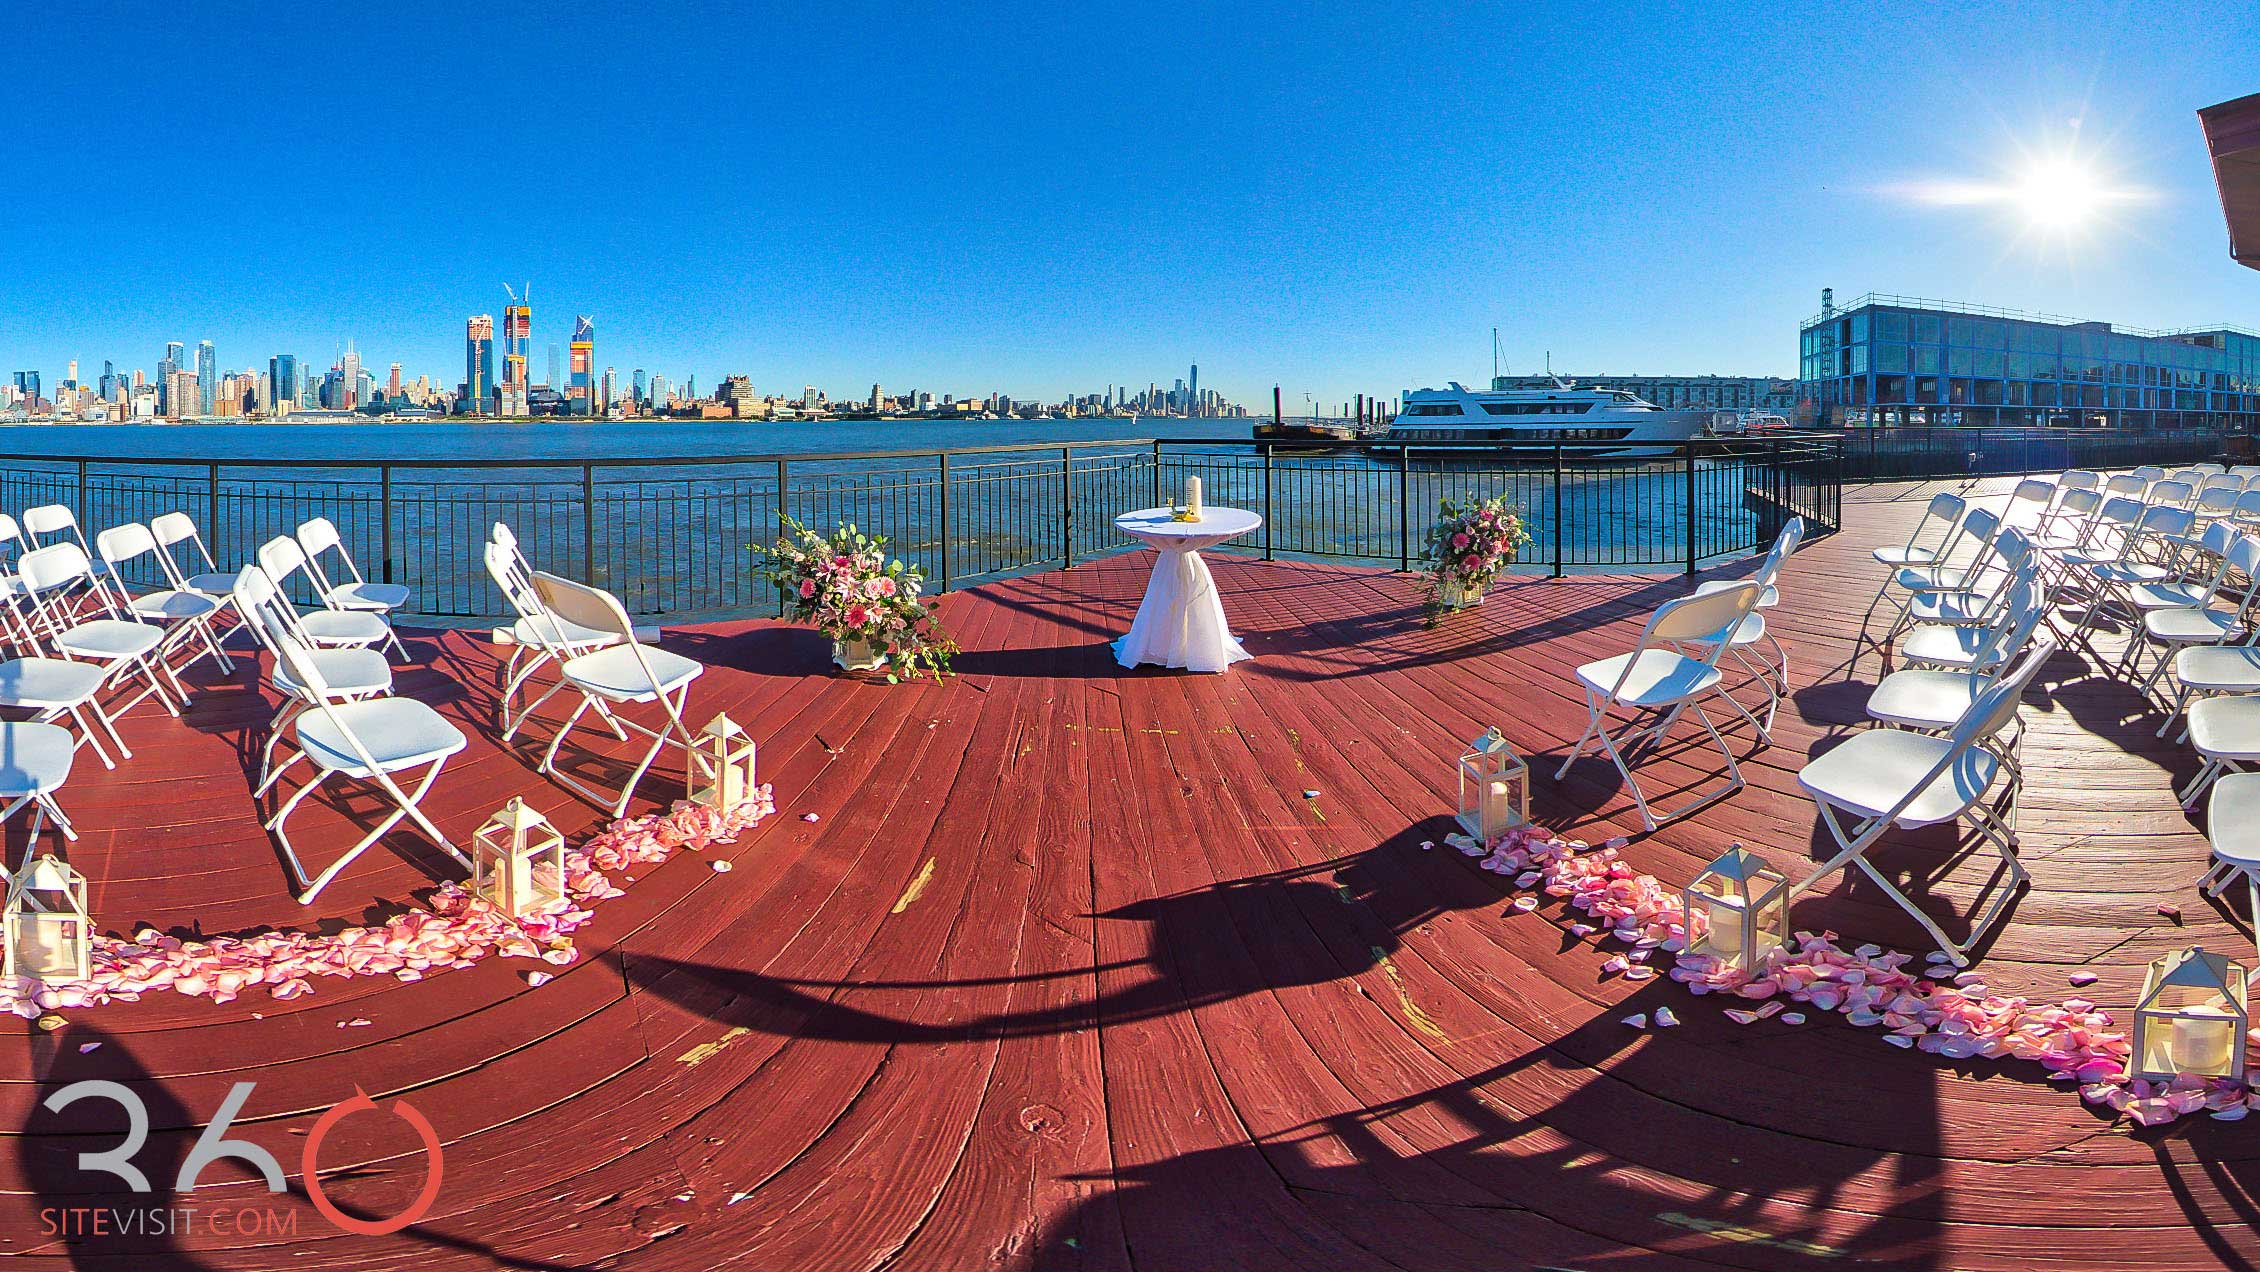 36-Chart House weehawken, NJ virtual tour by 360sitevisit